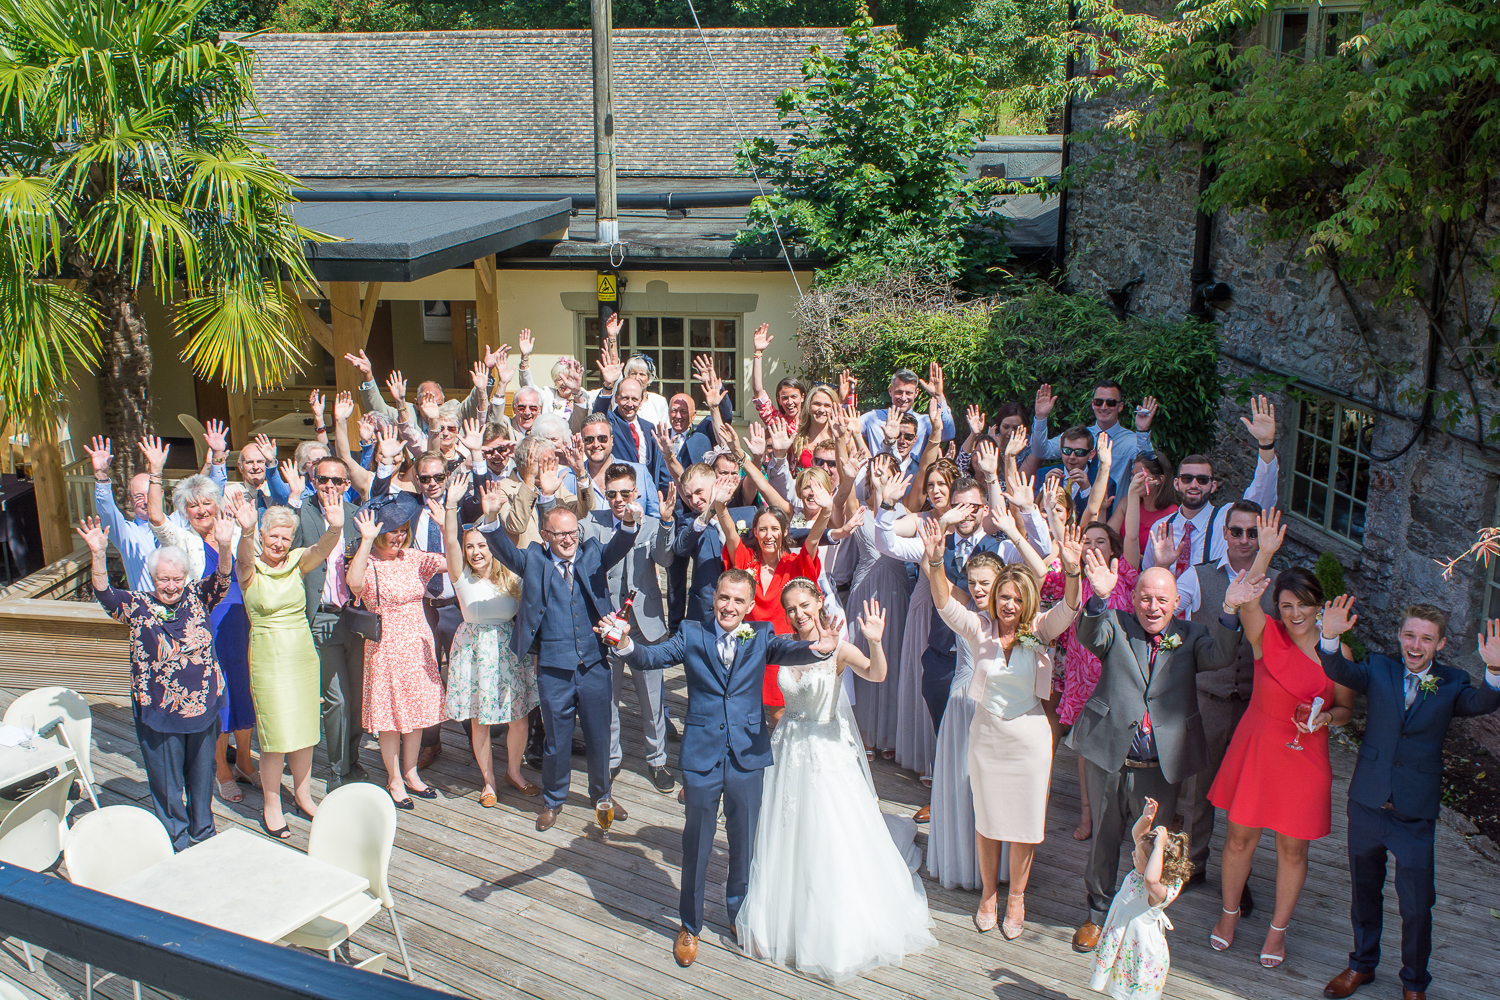 Big group photo from above on the decking at the Bickley Mill wedding venue in Devon